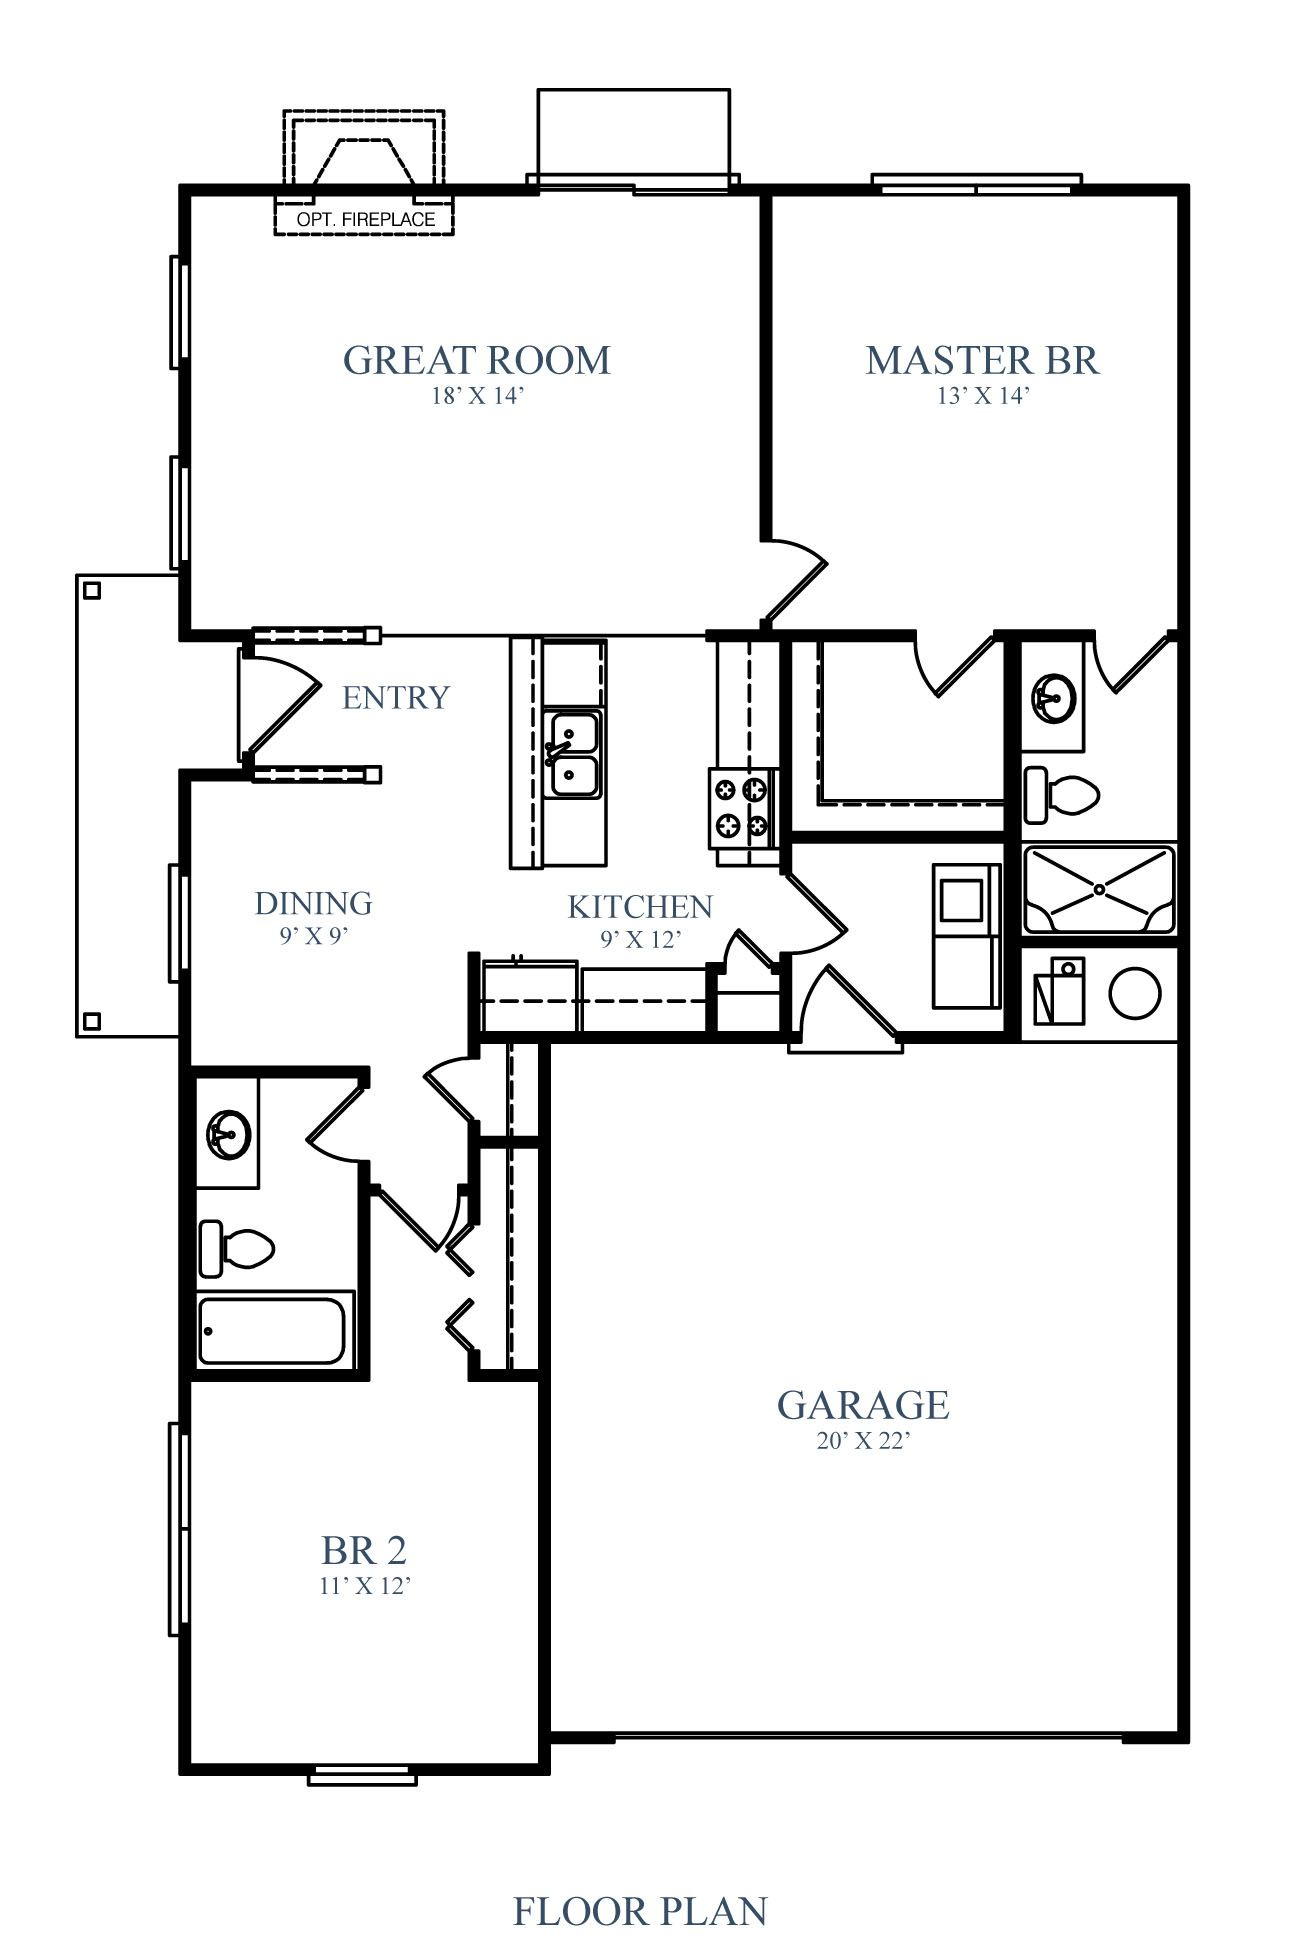 Westport homes of indianapolis prairie lakes tallgrass for Indianapolis home builders floor plans